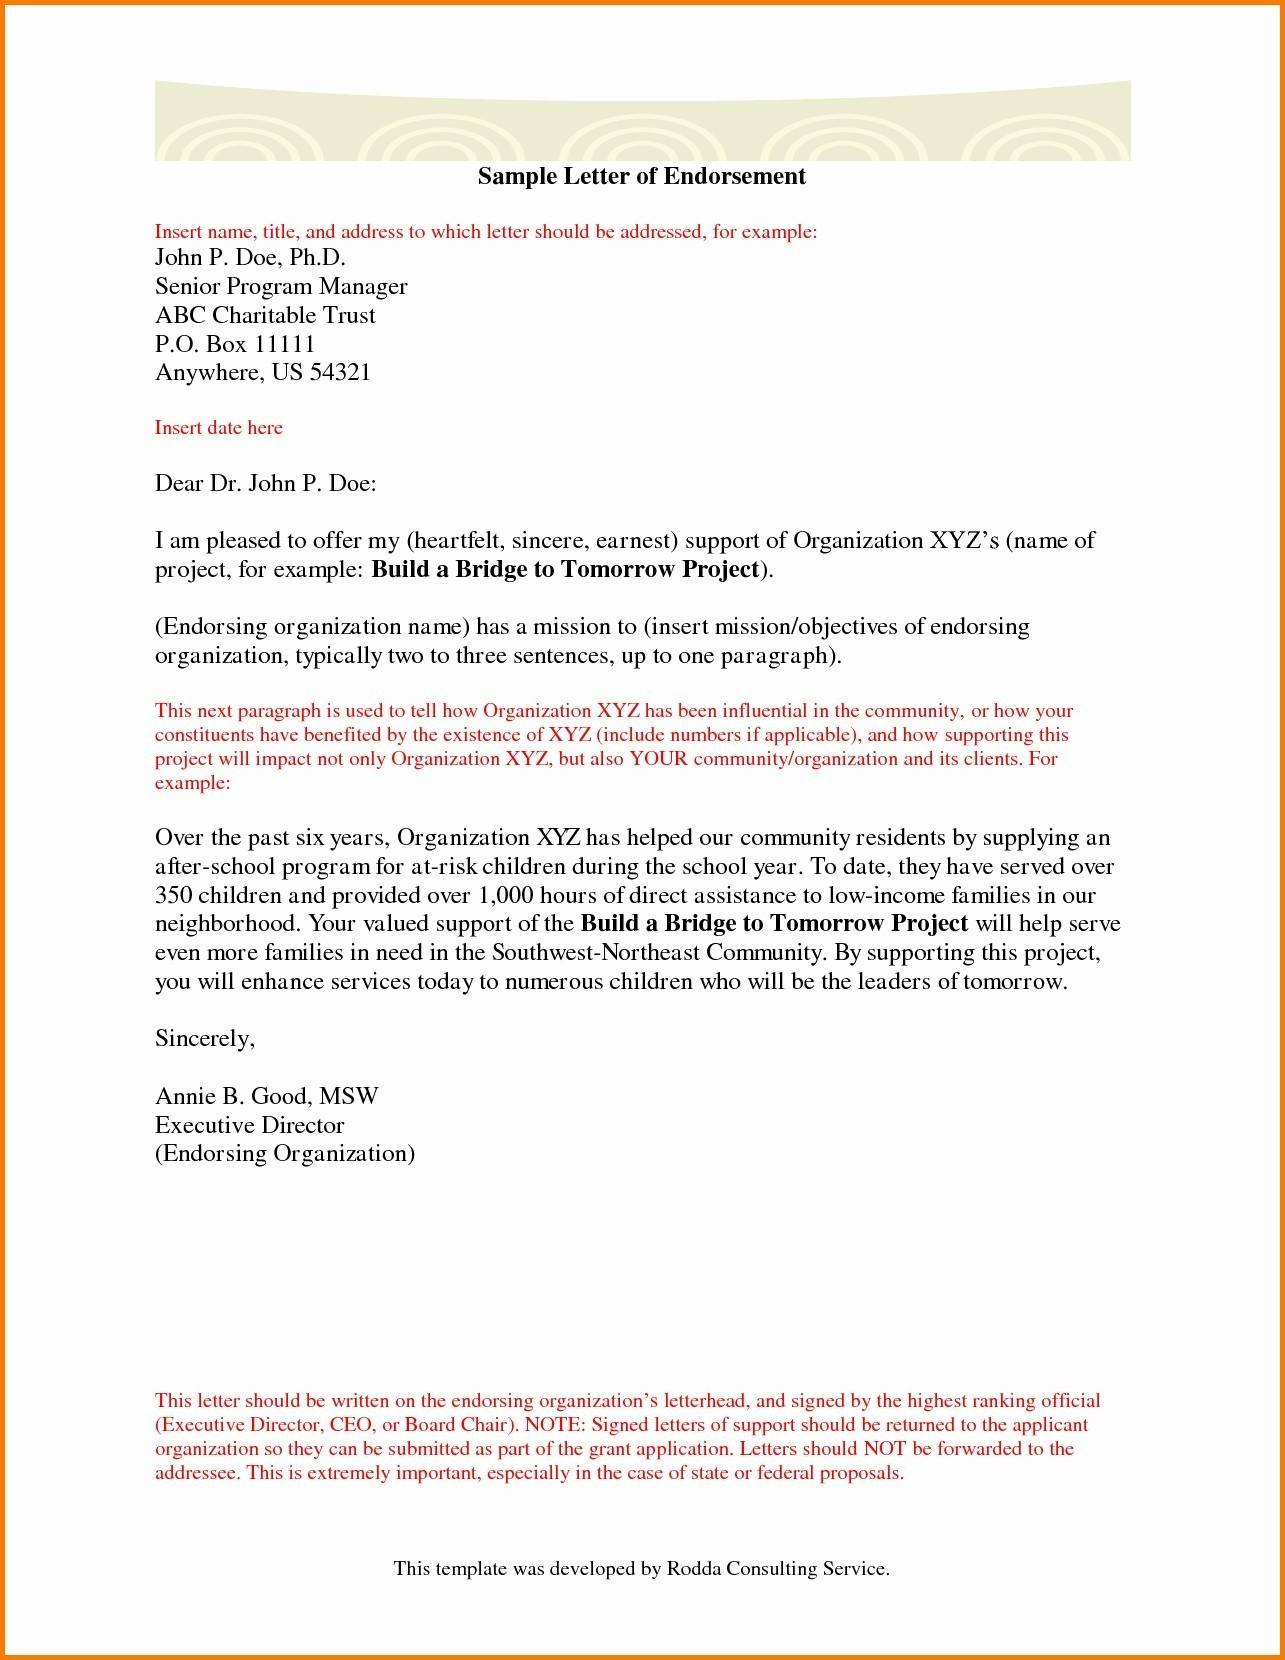 Sample Letter Of Support For Grant Application from howtostepmom.com